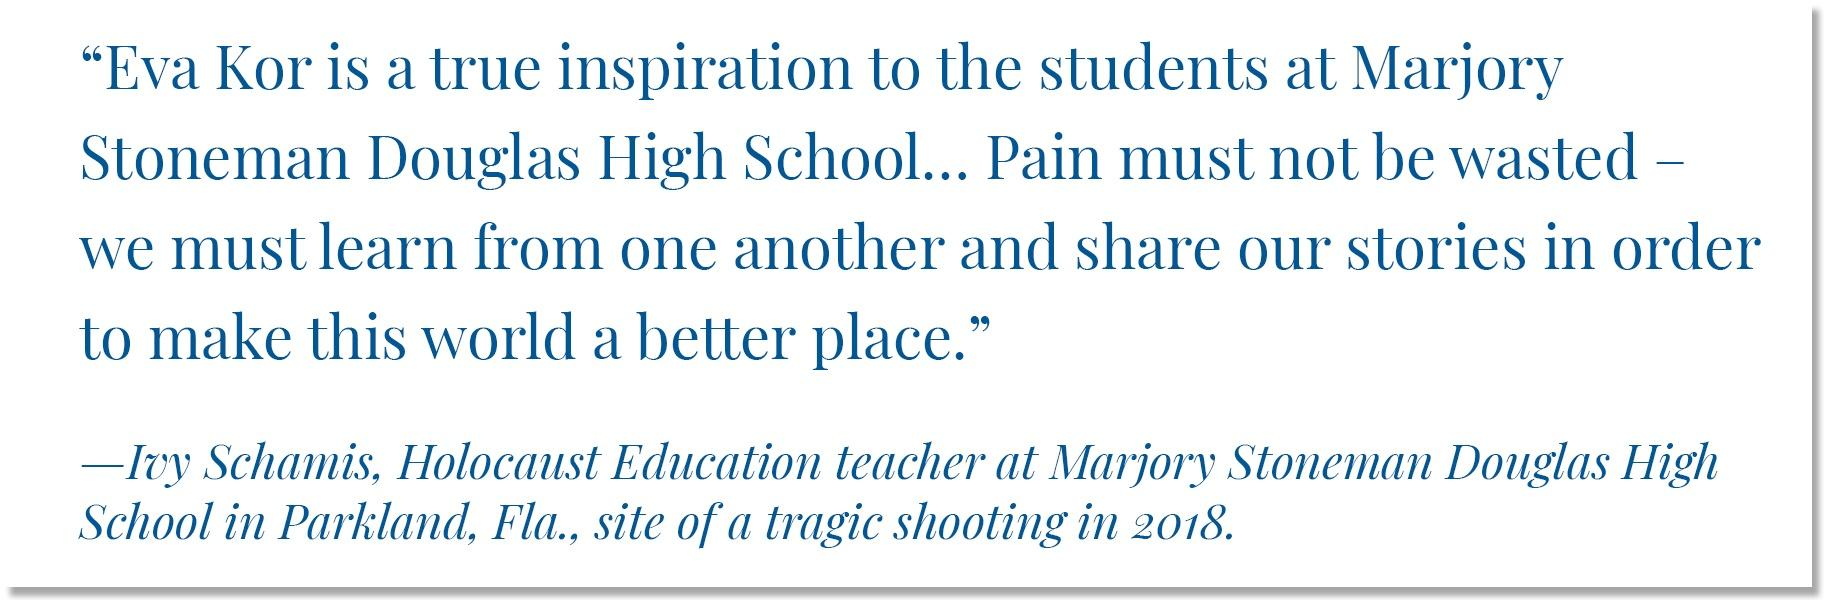 """Eva Kor is a true inspiration to the students at Marjory Stoneman Douglas High School… Pain must not be wasted – we must learn from one another and share our stories in order to make this world a better place."" •		—Ivy Schamis, Holocaust Education teacher at Marjory Stoneman Douglas High School in Parkland, Fla., site of a tragic shooting in 2018."